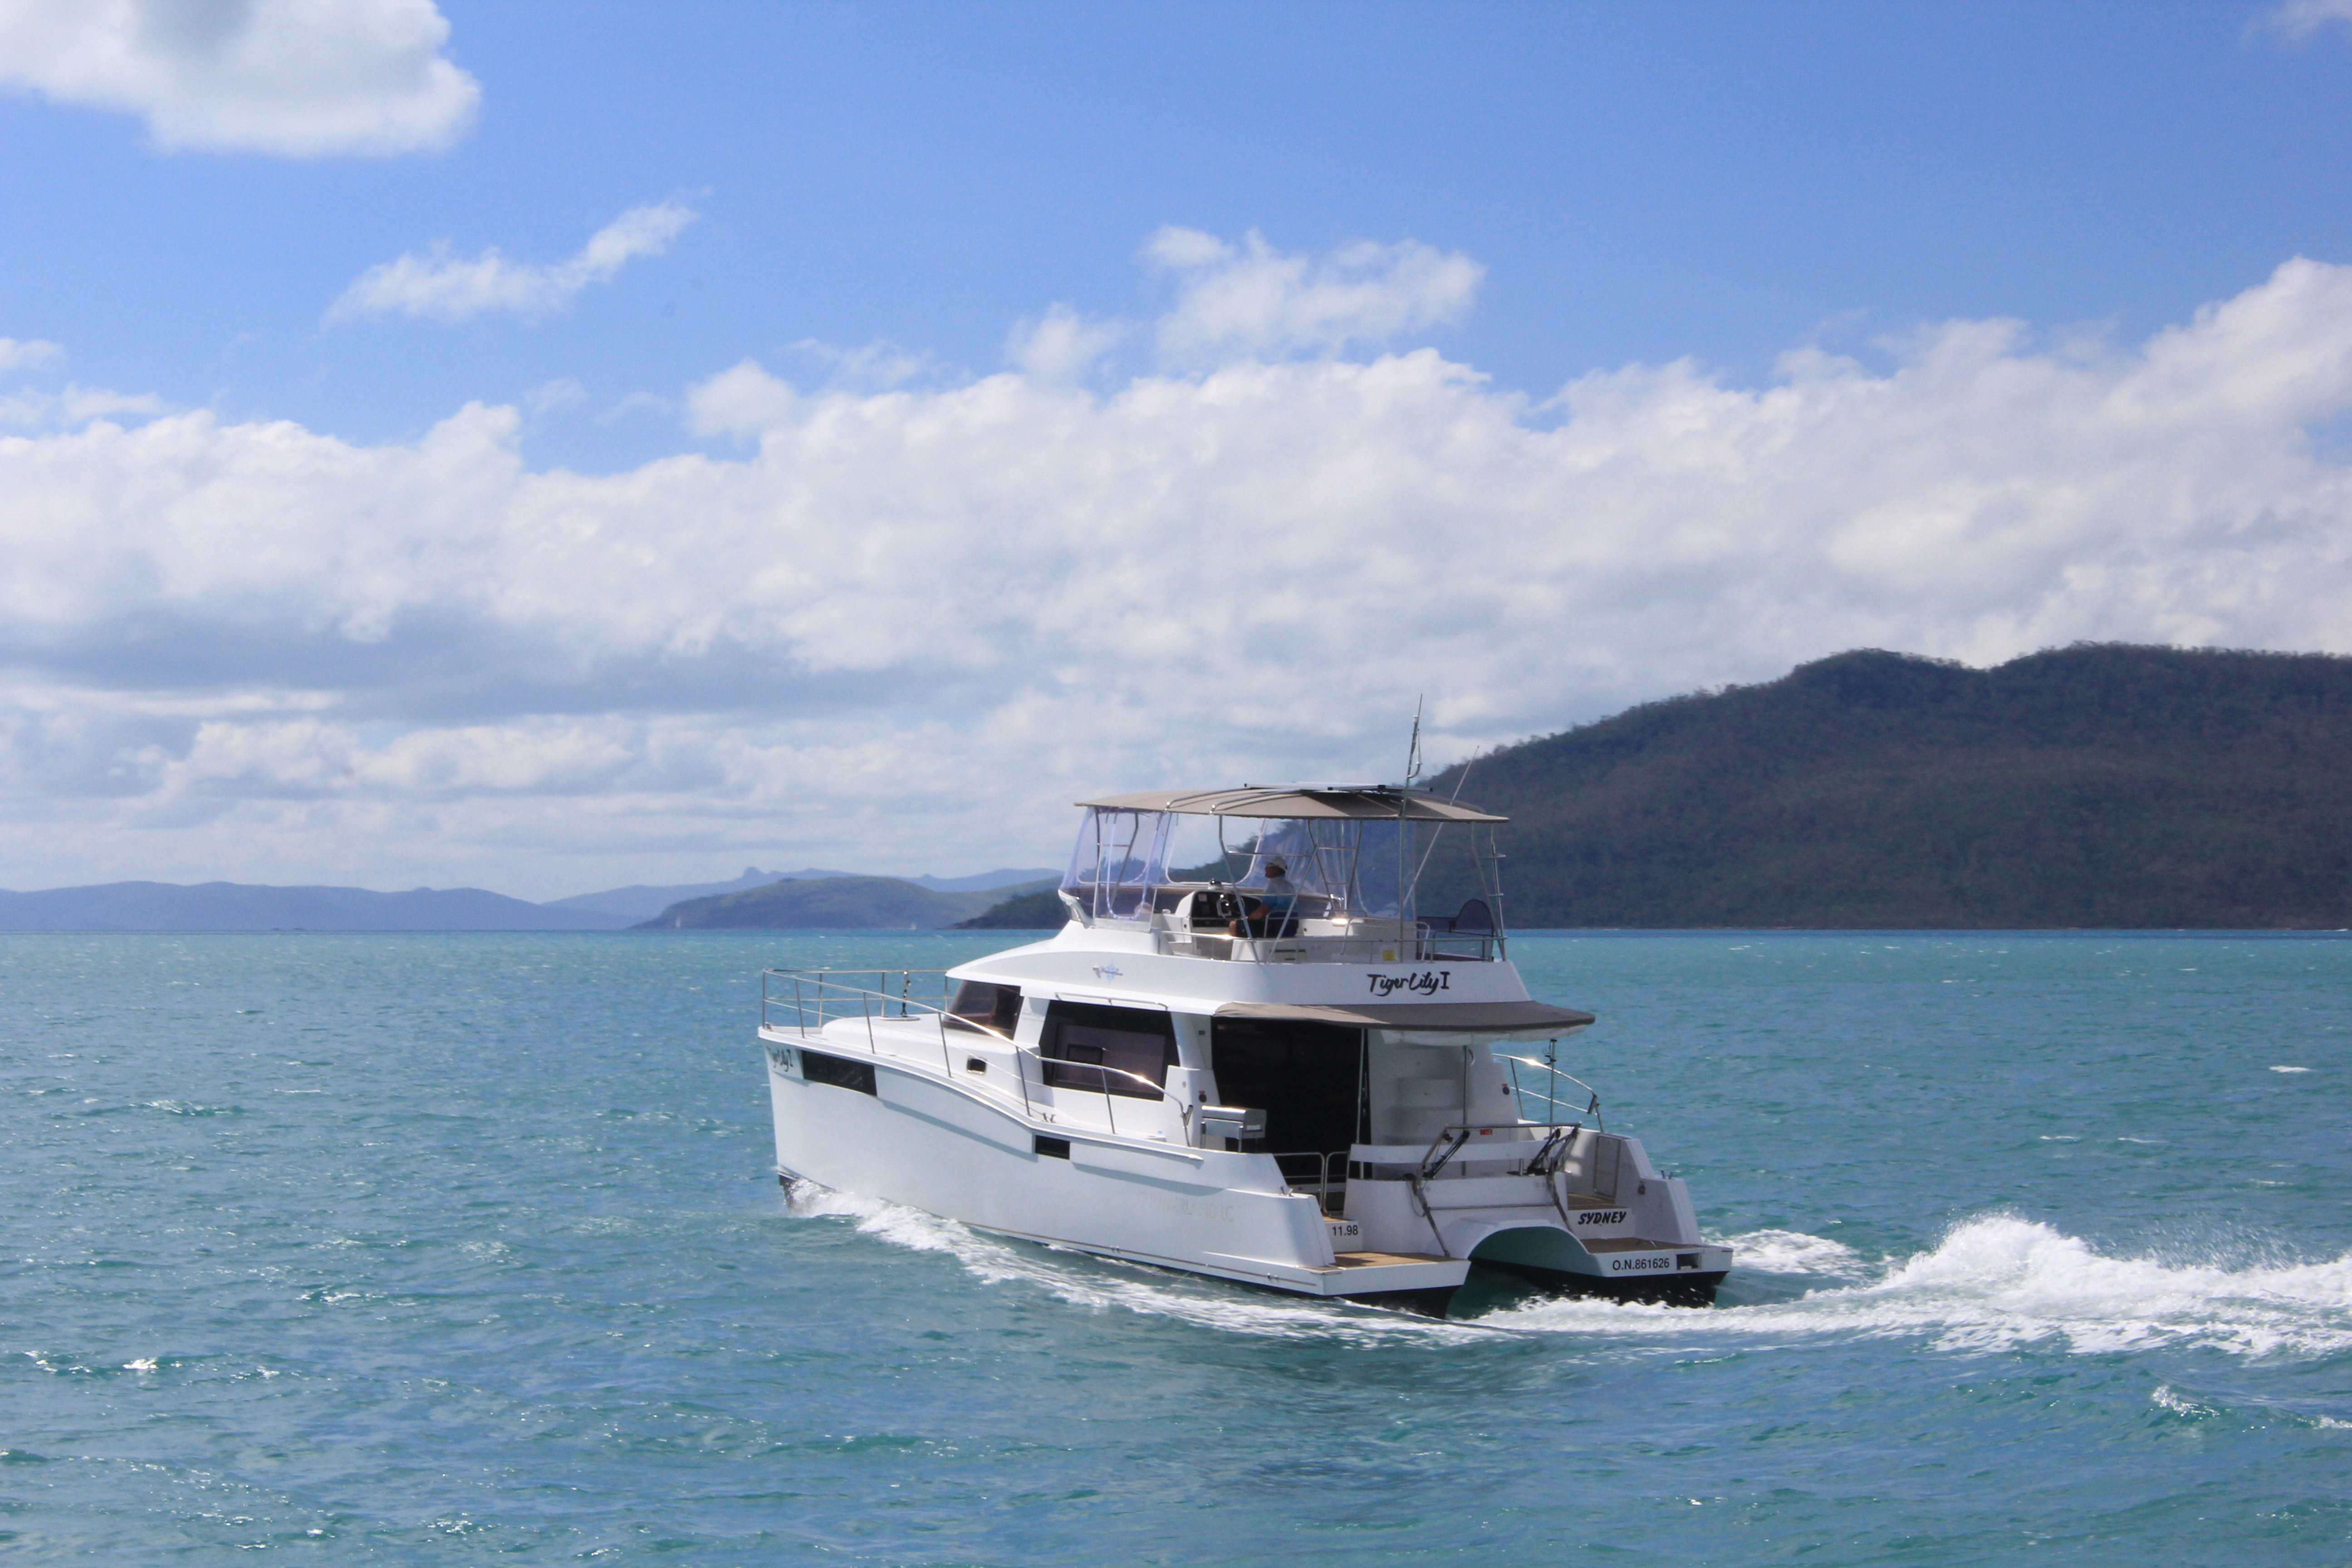 Whitsunday Escape Summerland 40 Underway